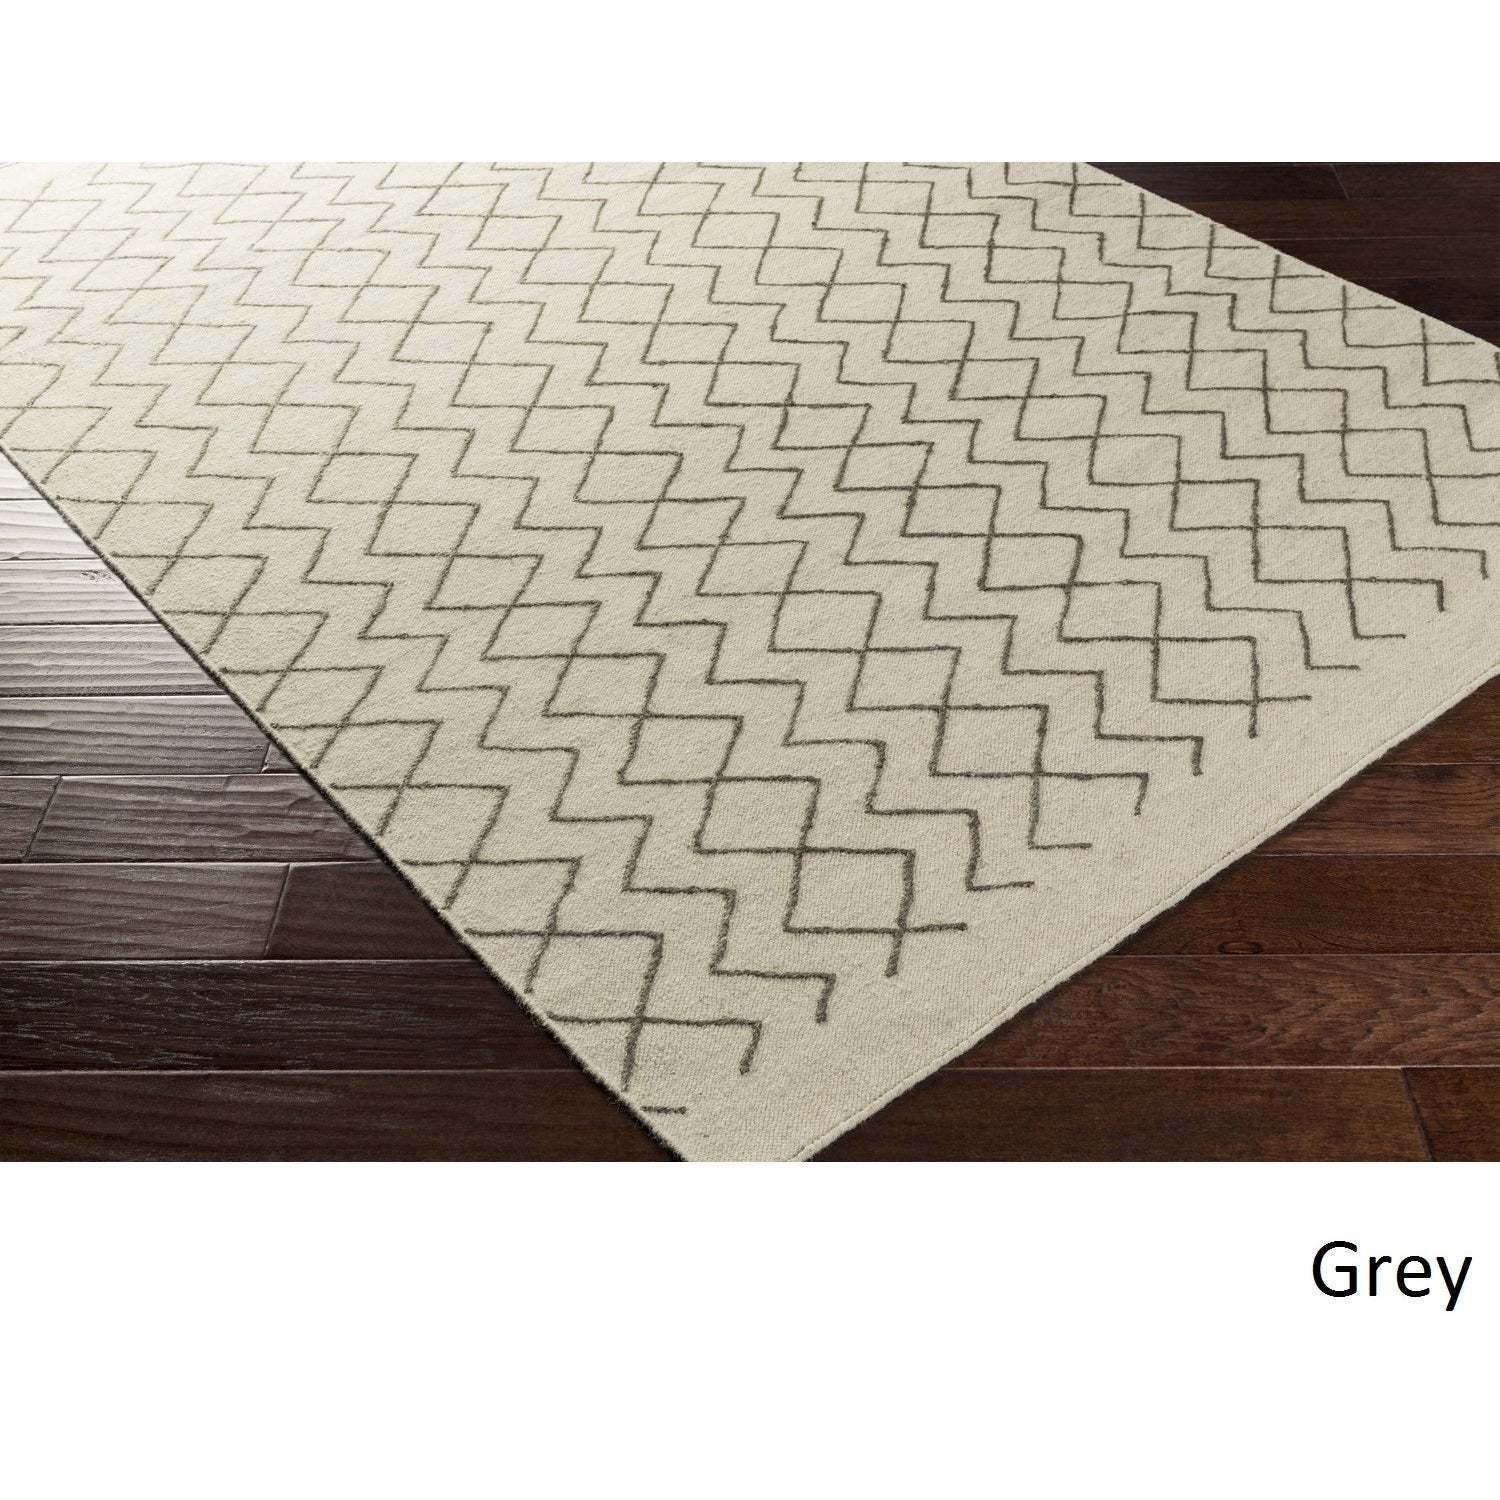 Hand Woven Southall Indoor Area Rug (8' x 10')